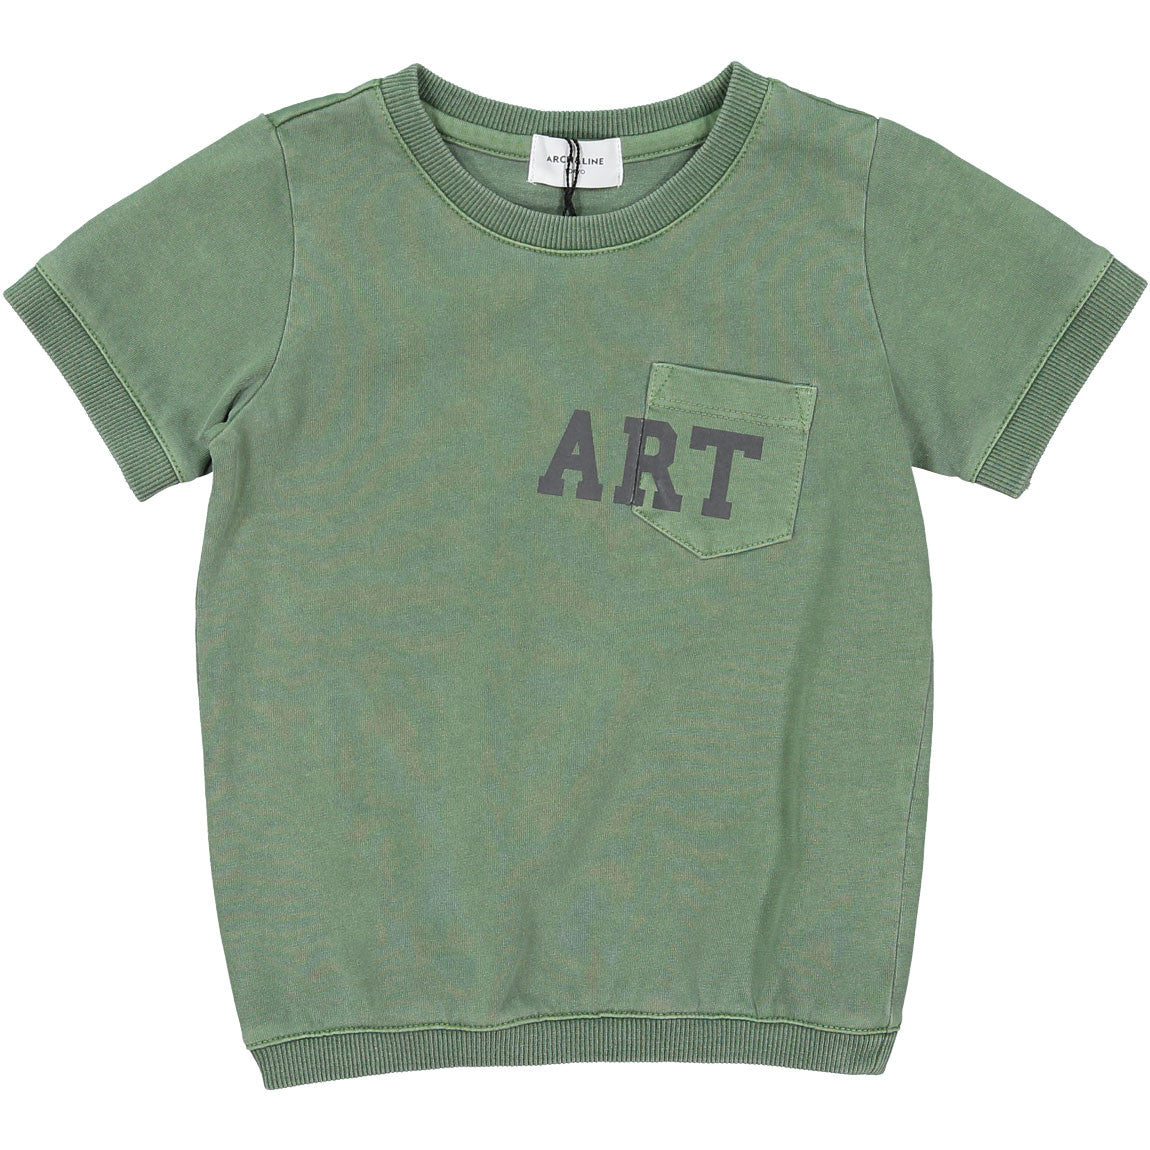 Arch and Line Olive Happy Tee - Ladida